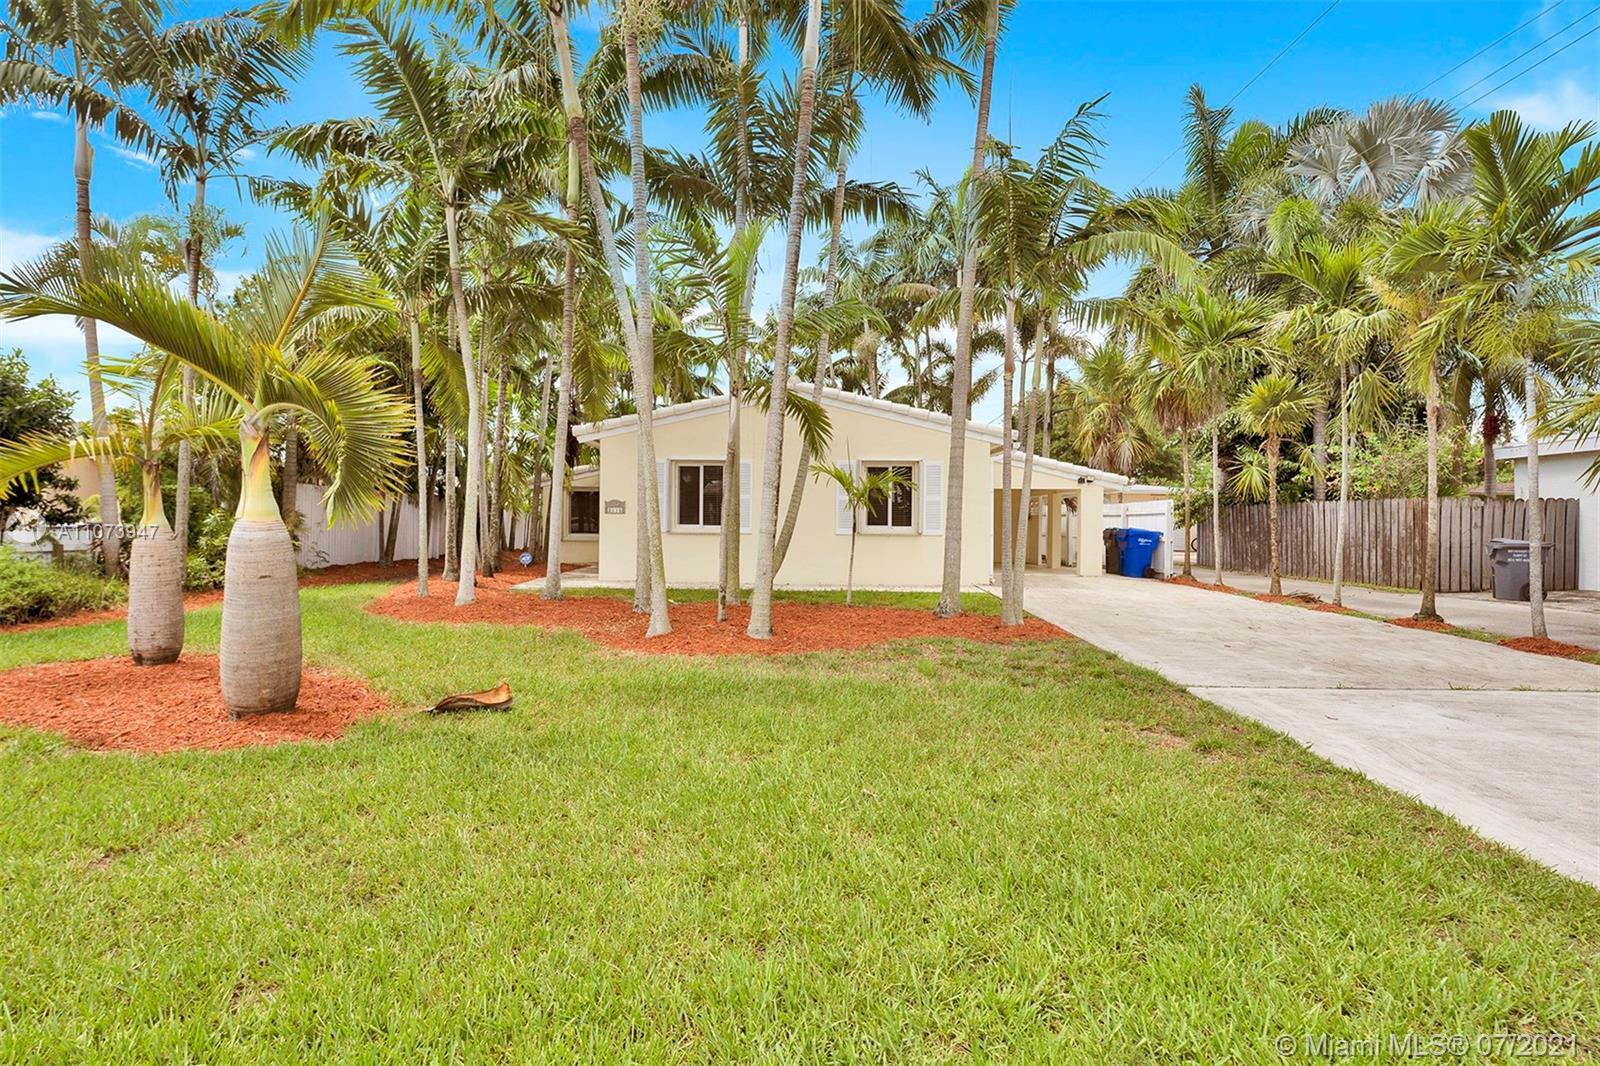 Amazing corner lot in a desirable Hollywood location.  2 Bedroom 1 bathroom home with a car port  wi